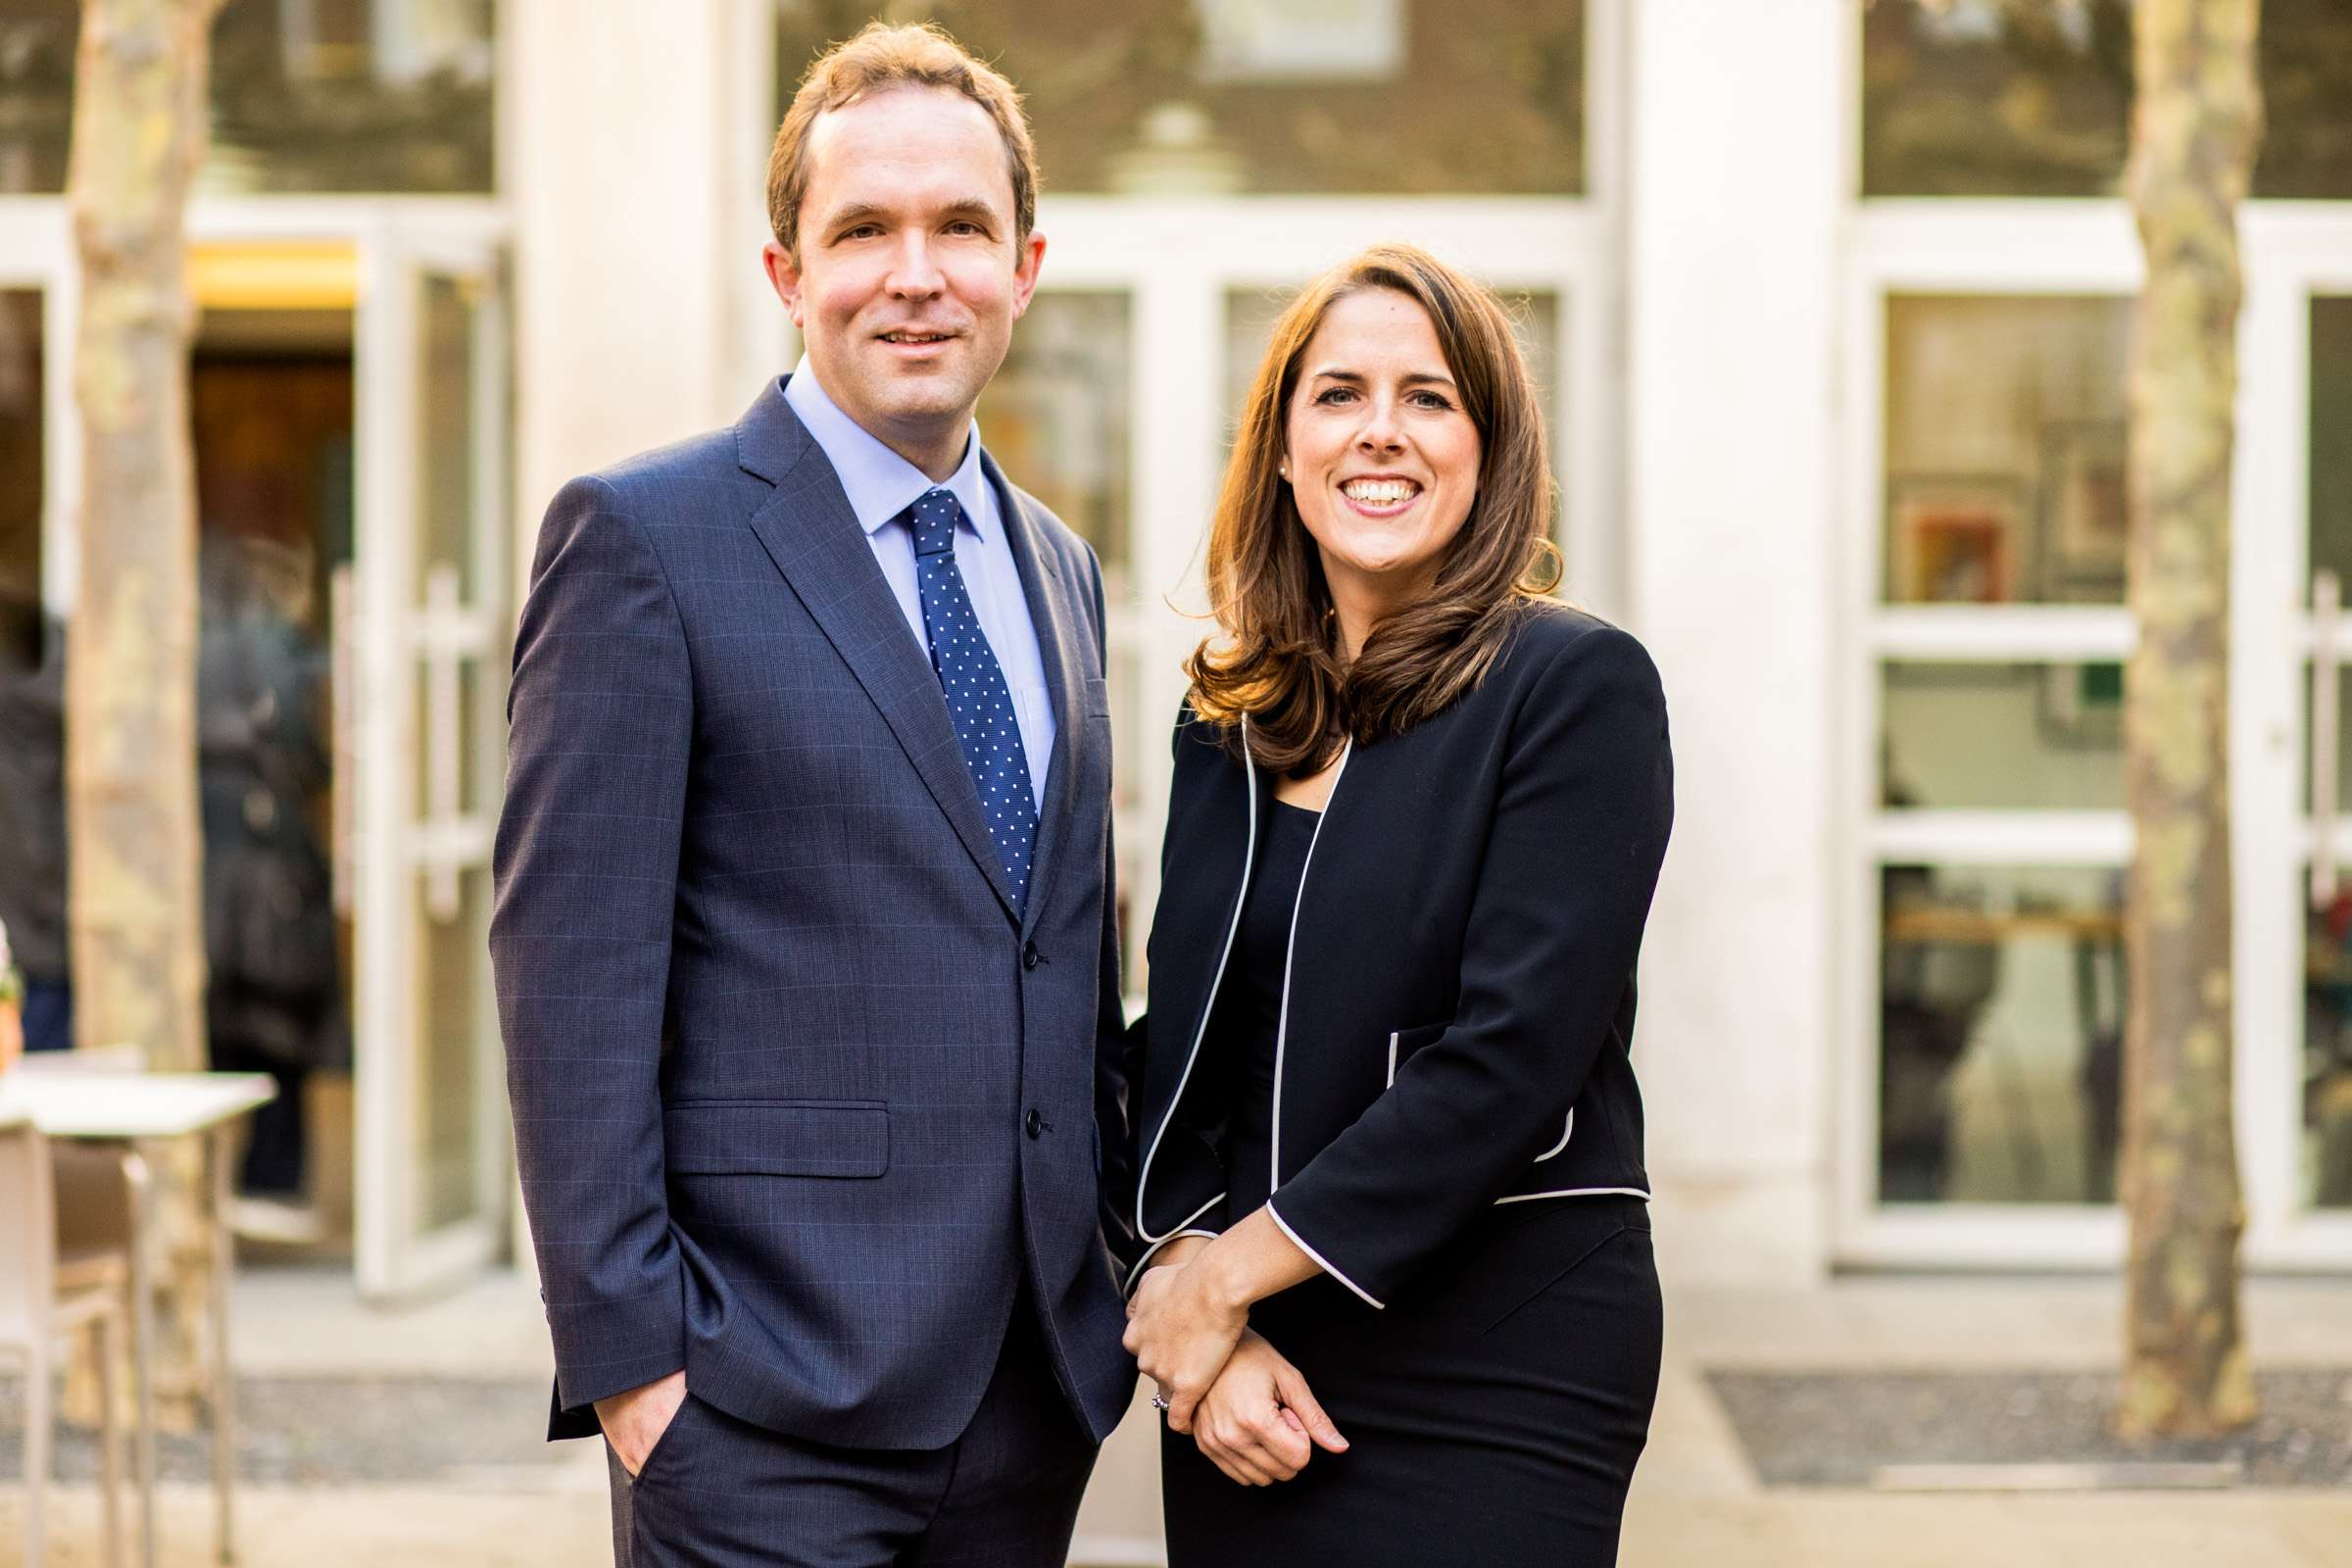 A headshot portrait of a male and a female professional, taken in Chichester, West Sussex